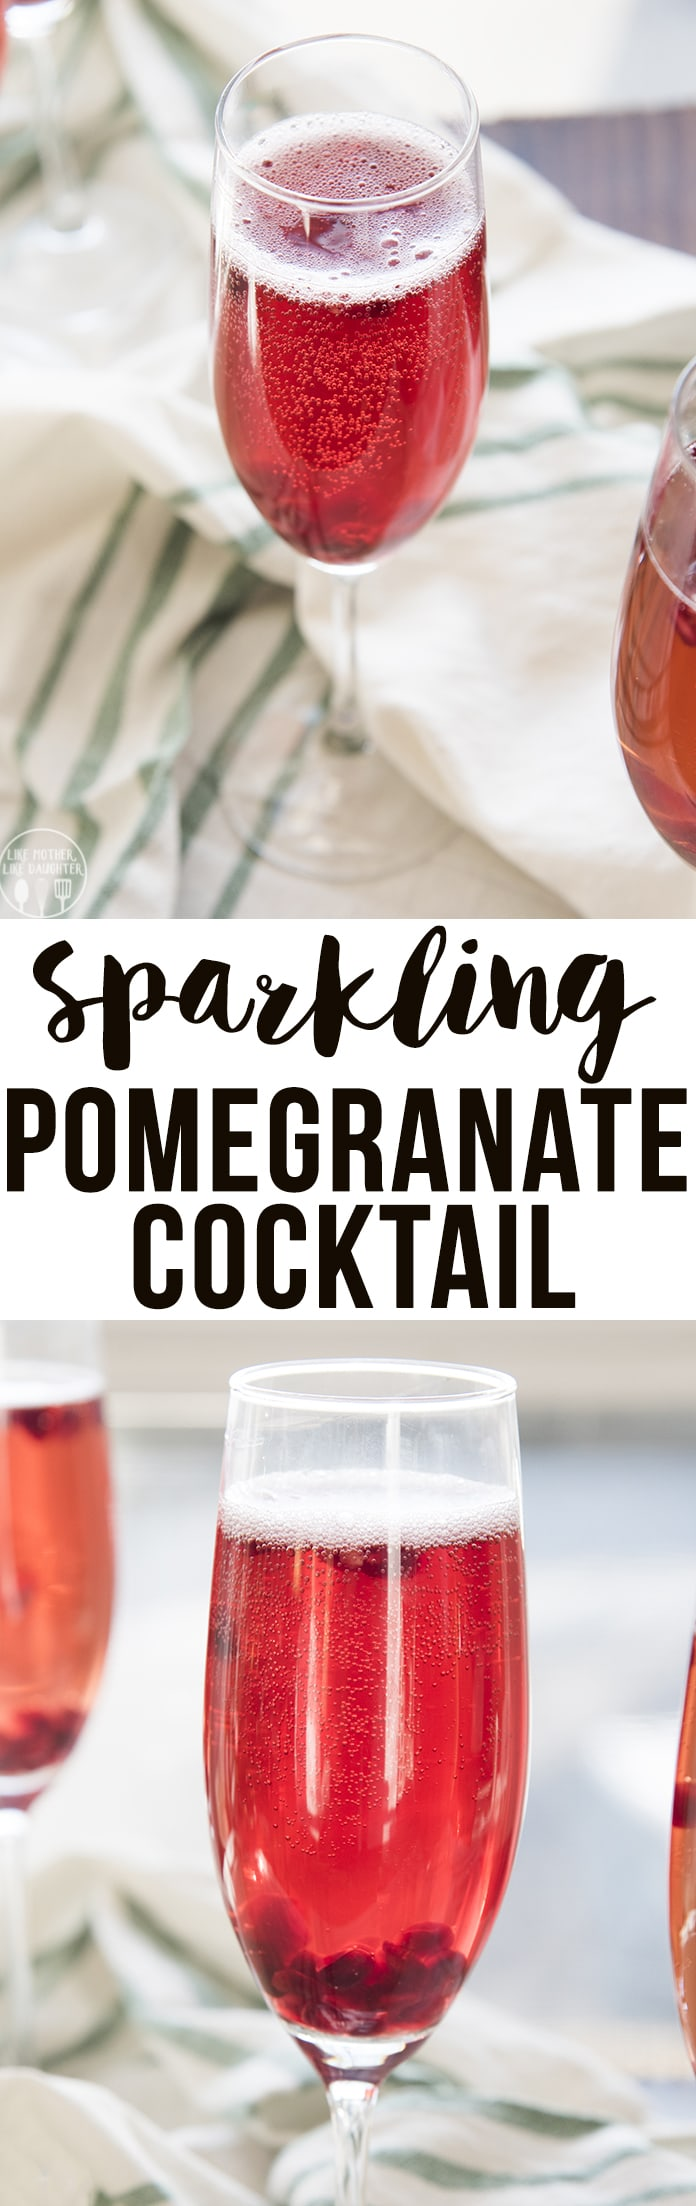 Pomegranate cocktail is a delicious sparkling drink that is perfect for the holidays!